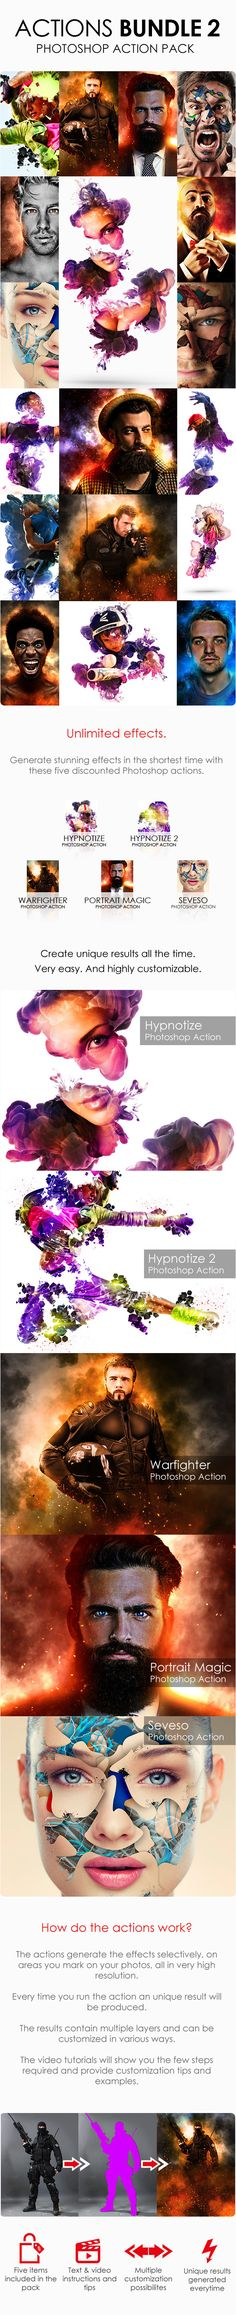 Actions Bundle 2 Five Photo Effect Photoshop actions. Download here: http://graphicriver.net/item/actions-bundle-2/14727487?ref=ksioks